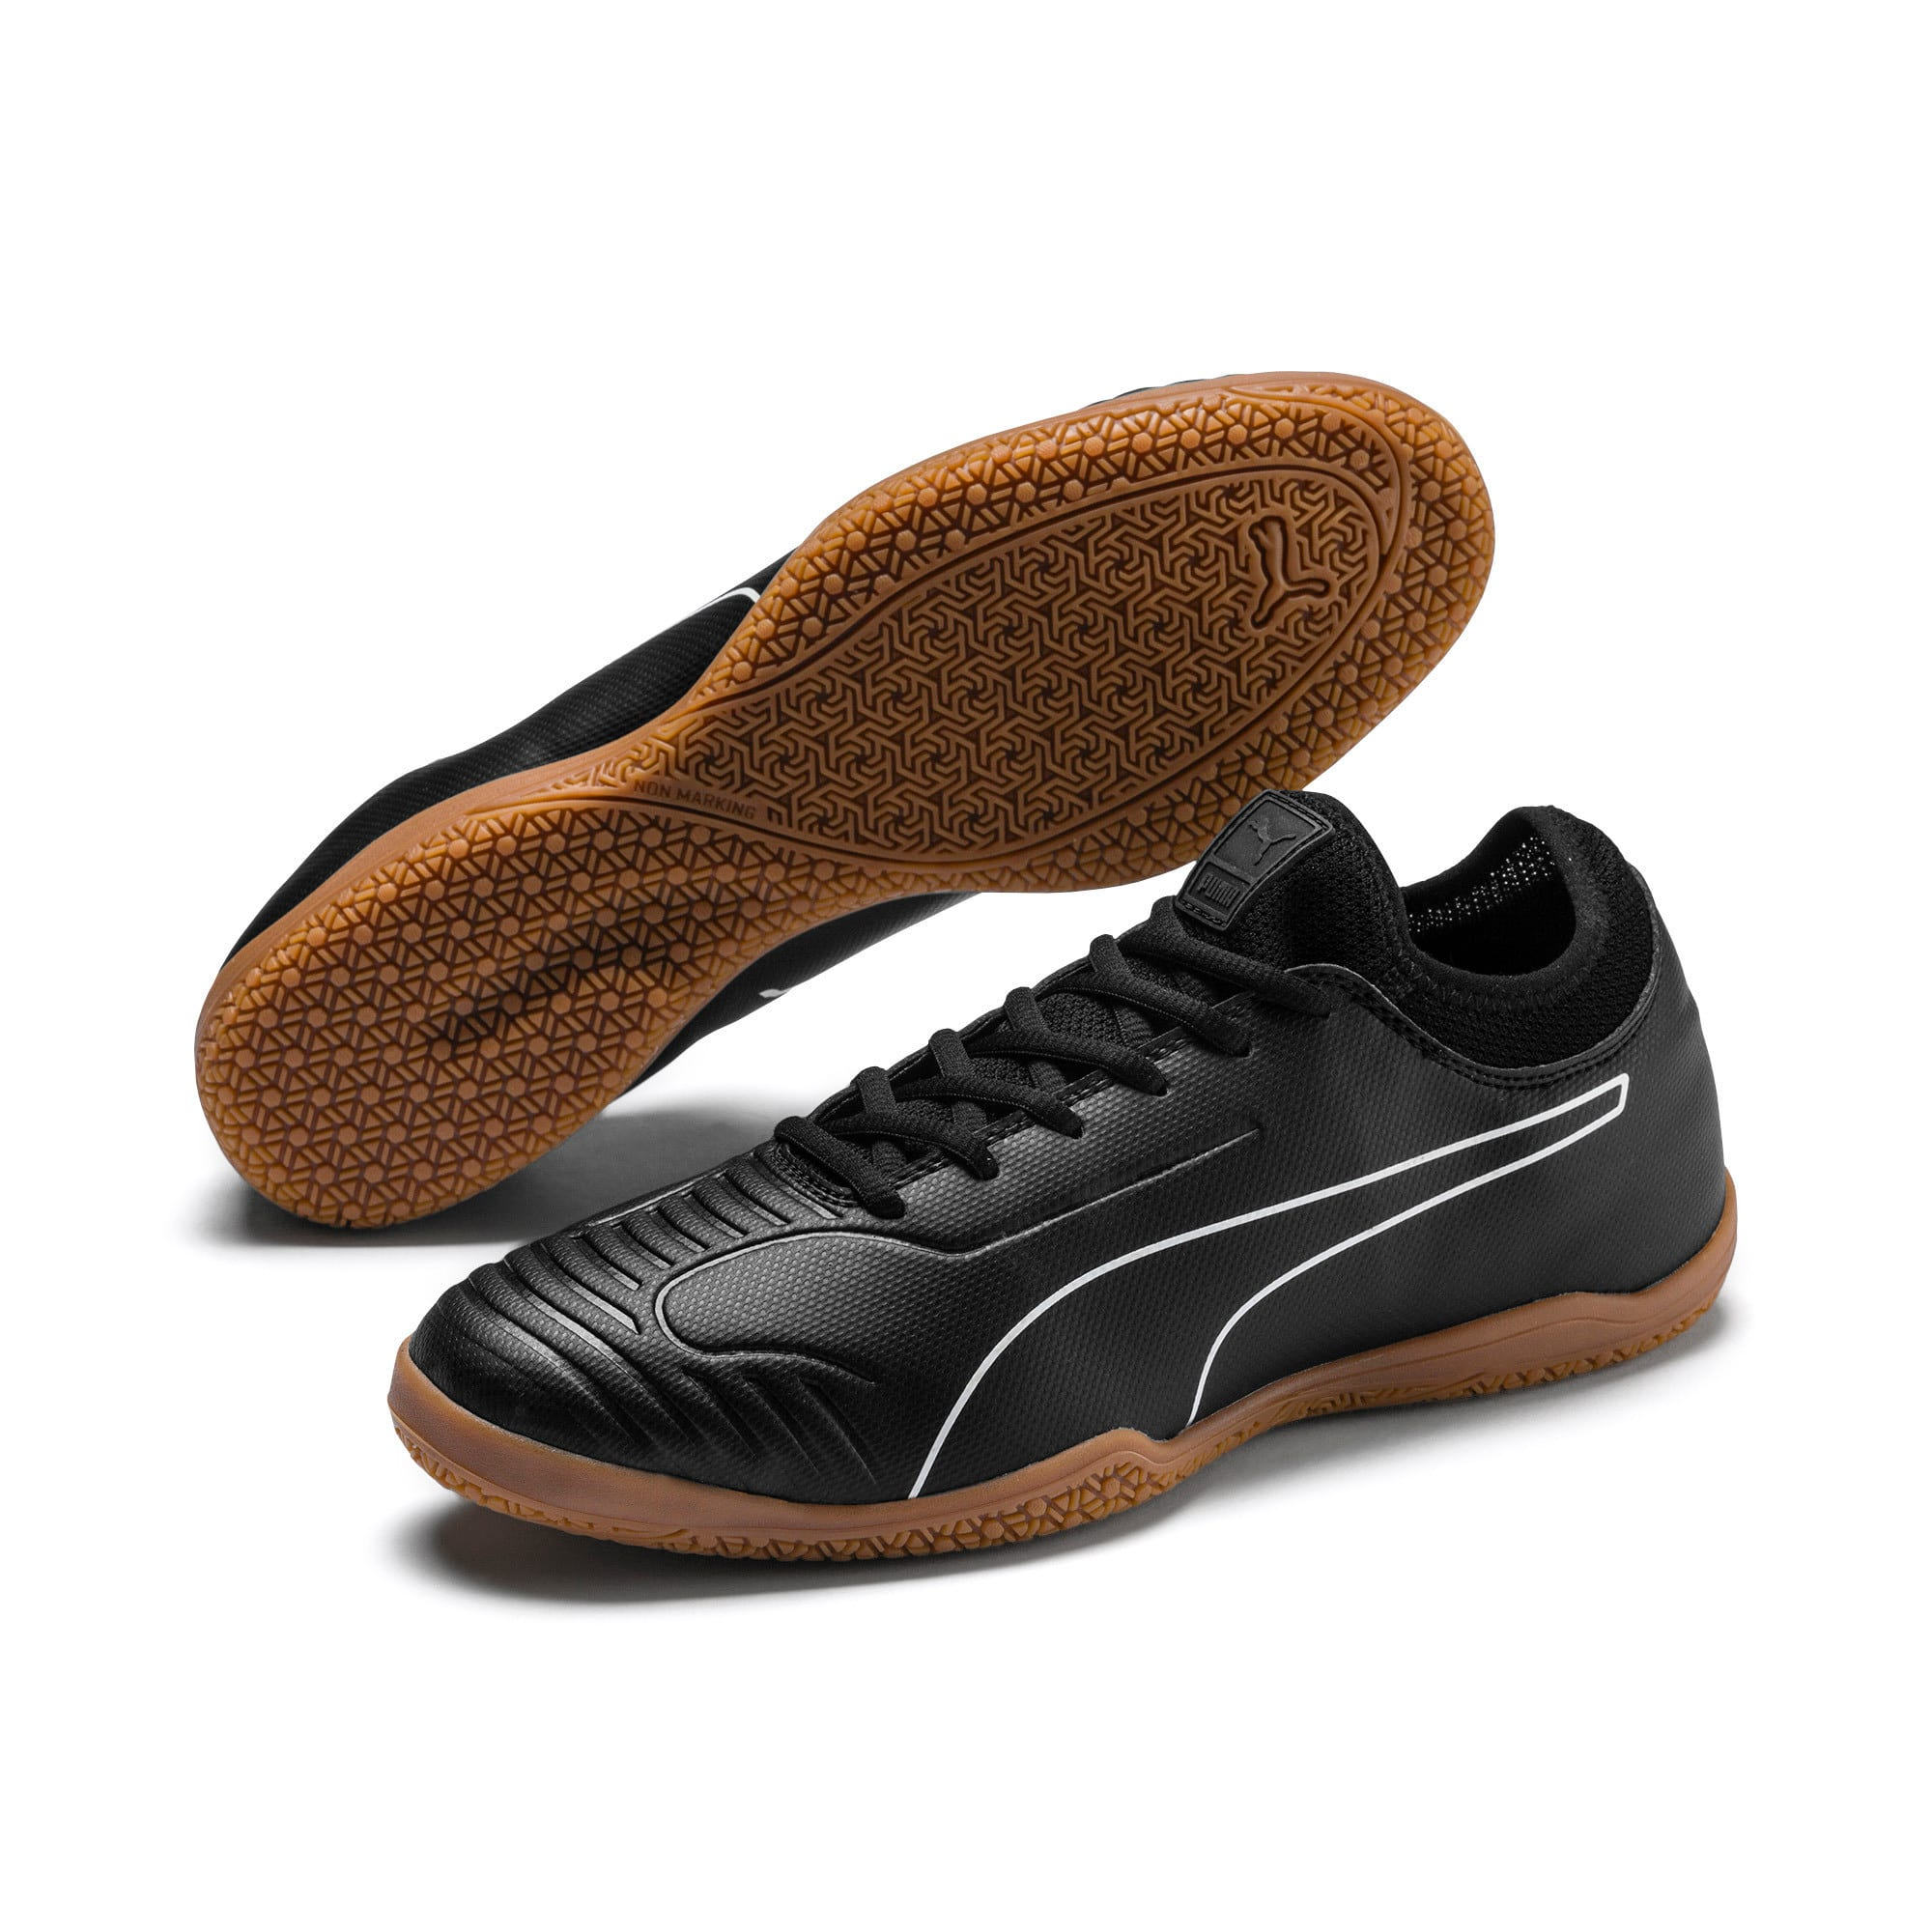 Thumbnail 3 of 365 Sala 2 Men's Soccer Shoes, Puma Black-Puma White-Gum, medium